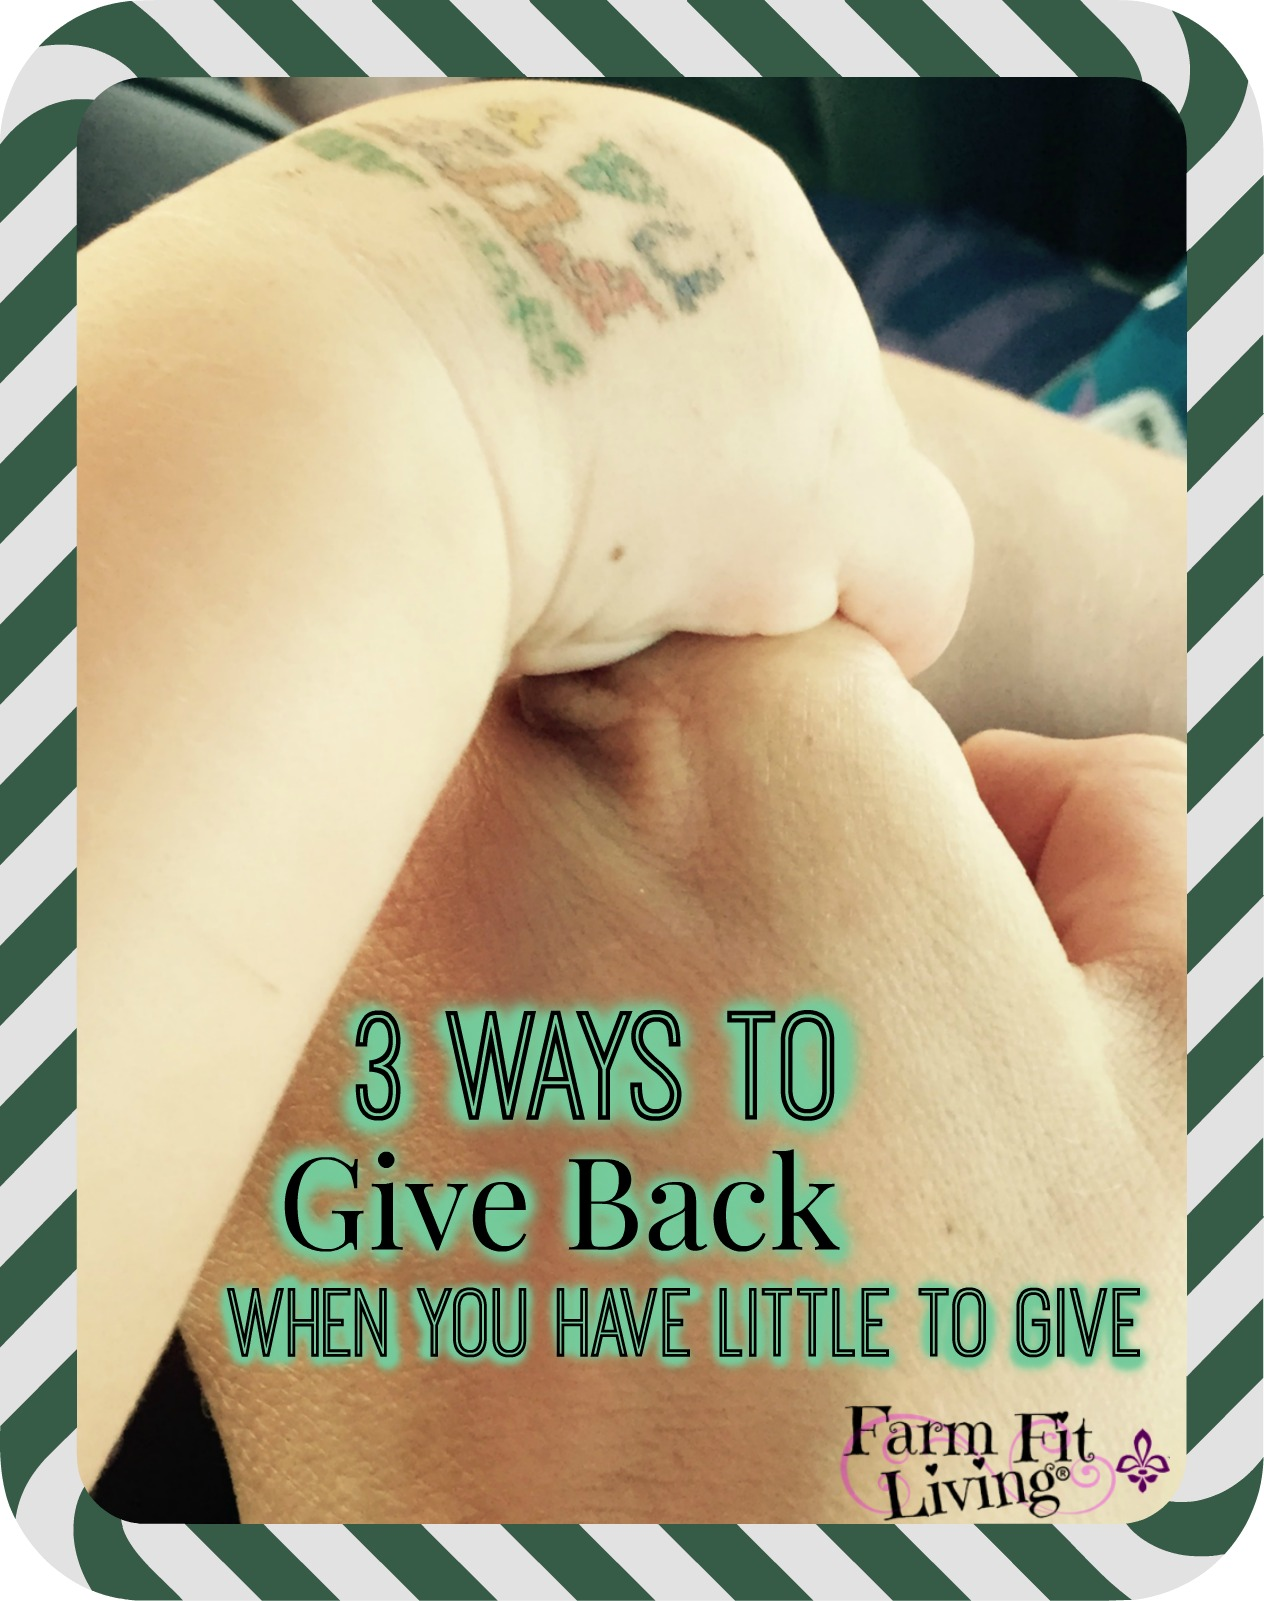 How to give back when you have so little to give